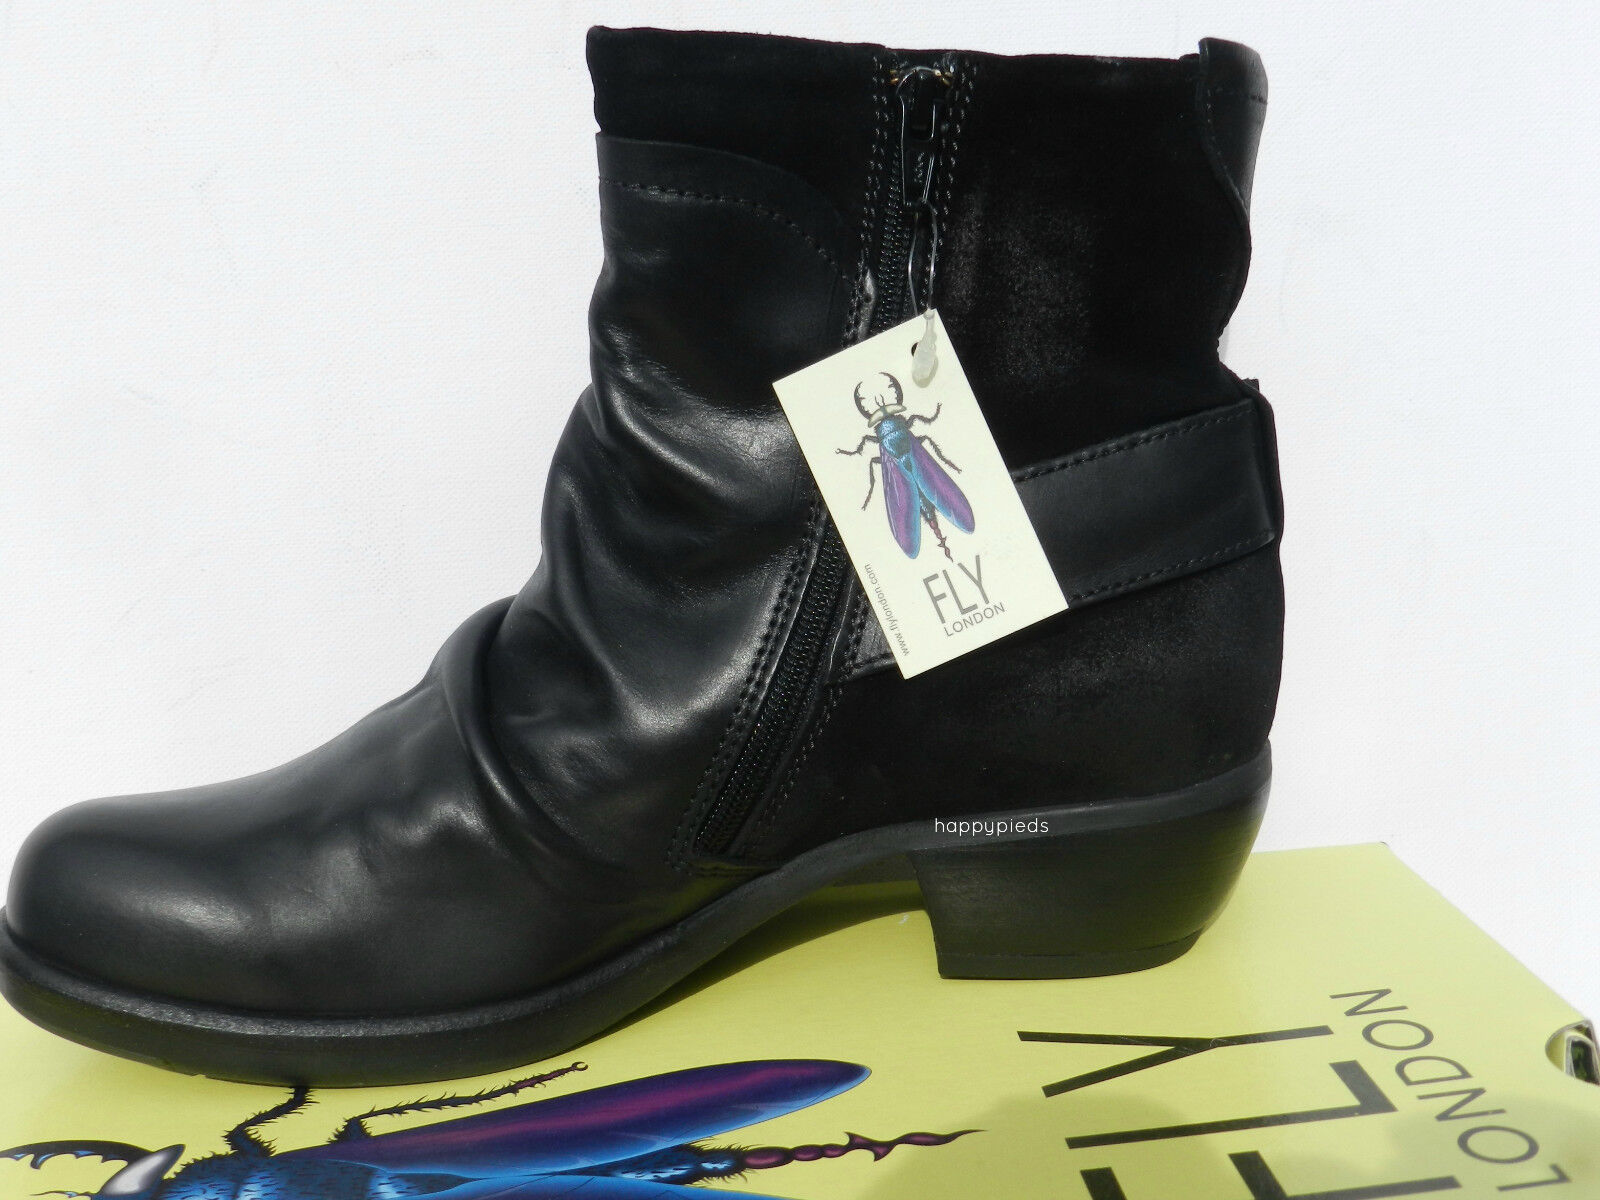 Fly London Mel shoes Femme 40 Bottes Bottines Montantes Motard black UK7 New